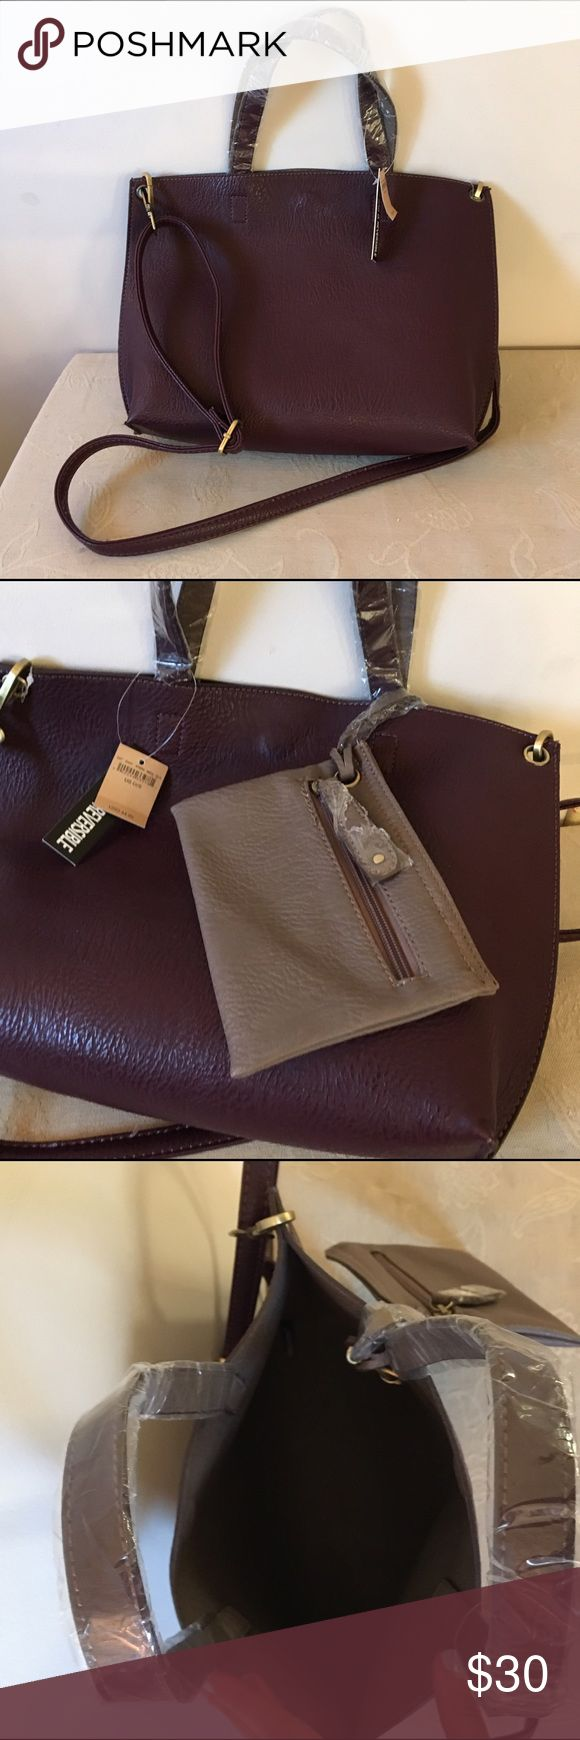 American eagle reversible tote bag Purple and grey reversible tote! Comes with small pouch in the second picture. Never worn!! American Eagle Outfitters Bags Totes